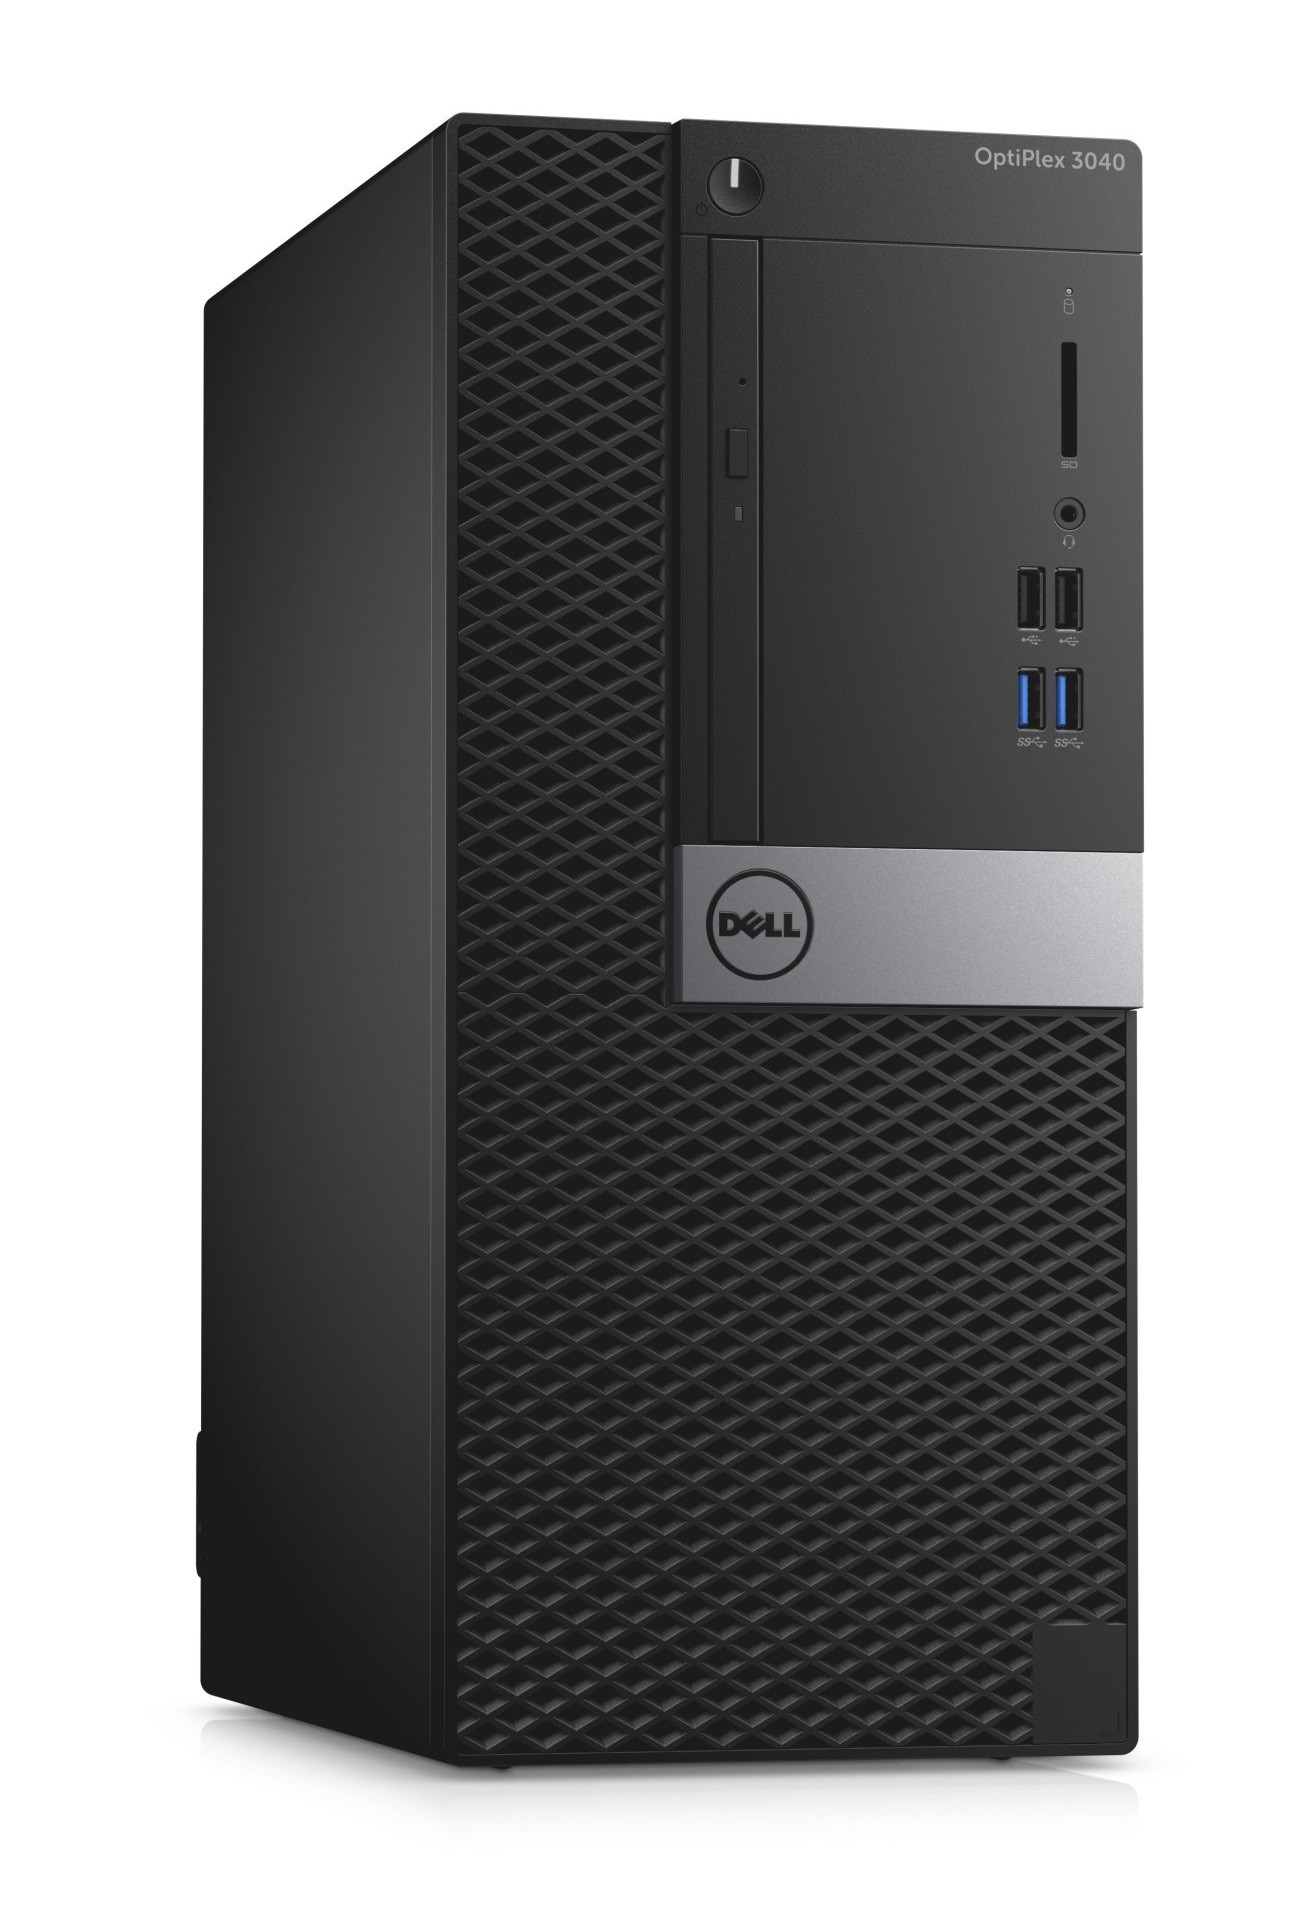 DELL OptiPlex MT 3040 Core i3-6100 /4GB/500GB/Intel HD/Win7 PRO - Win 10 64bit/3Yr NBD